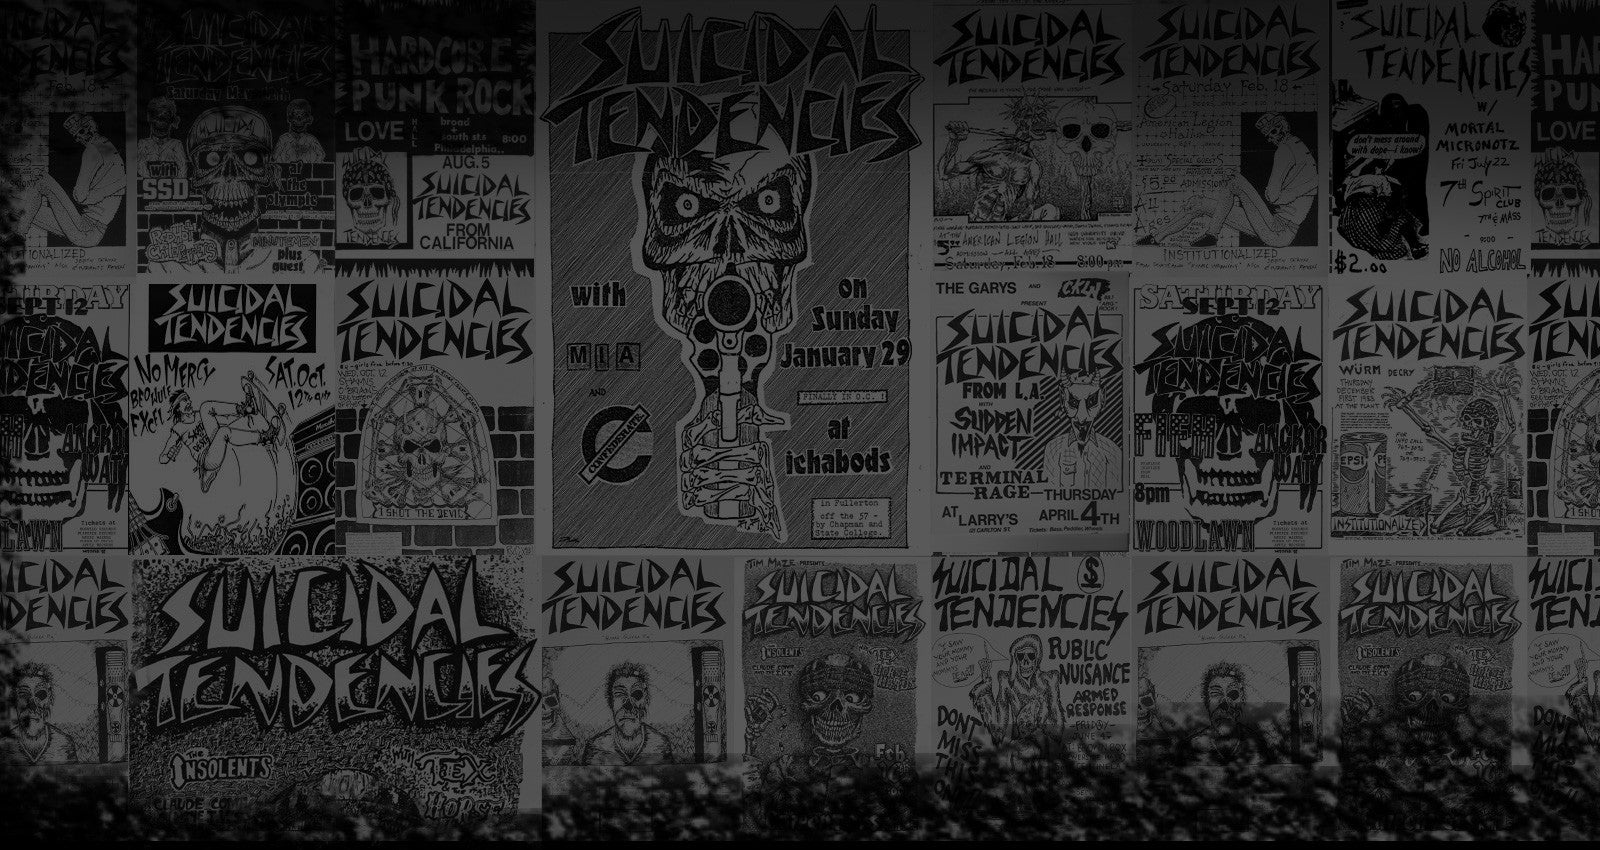 Suicidal Tendencies Merchandise STore